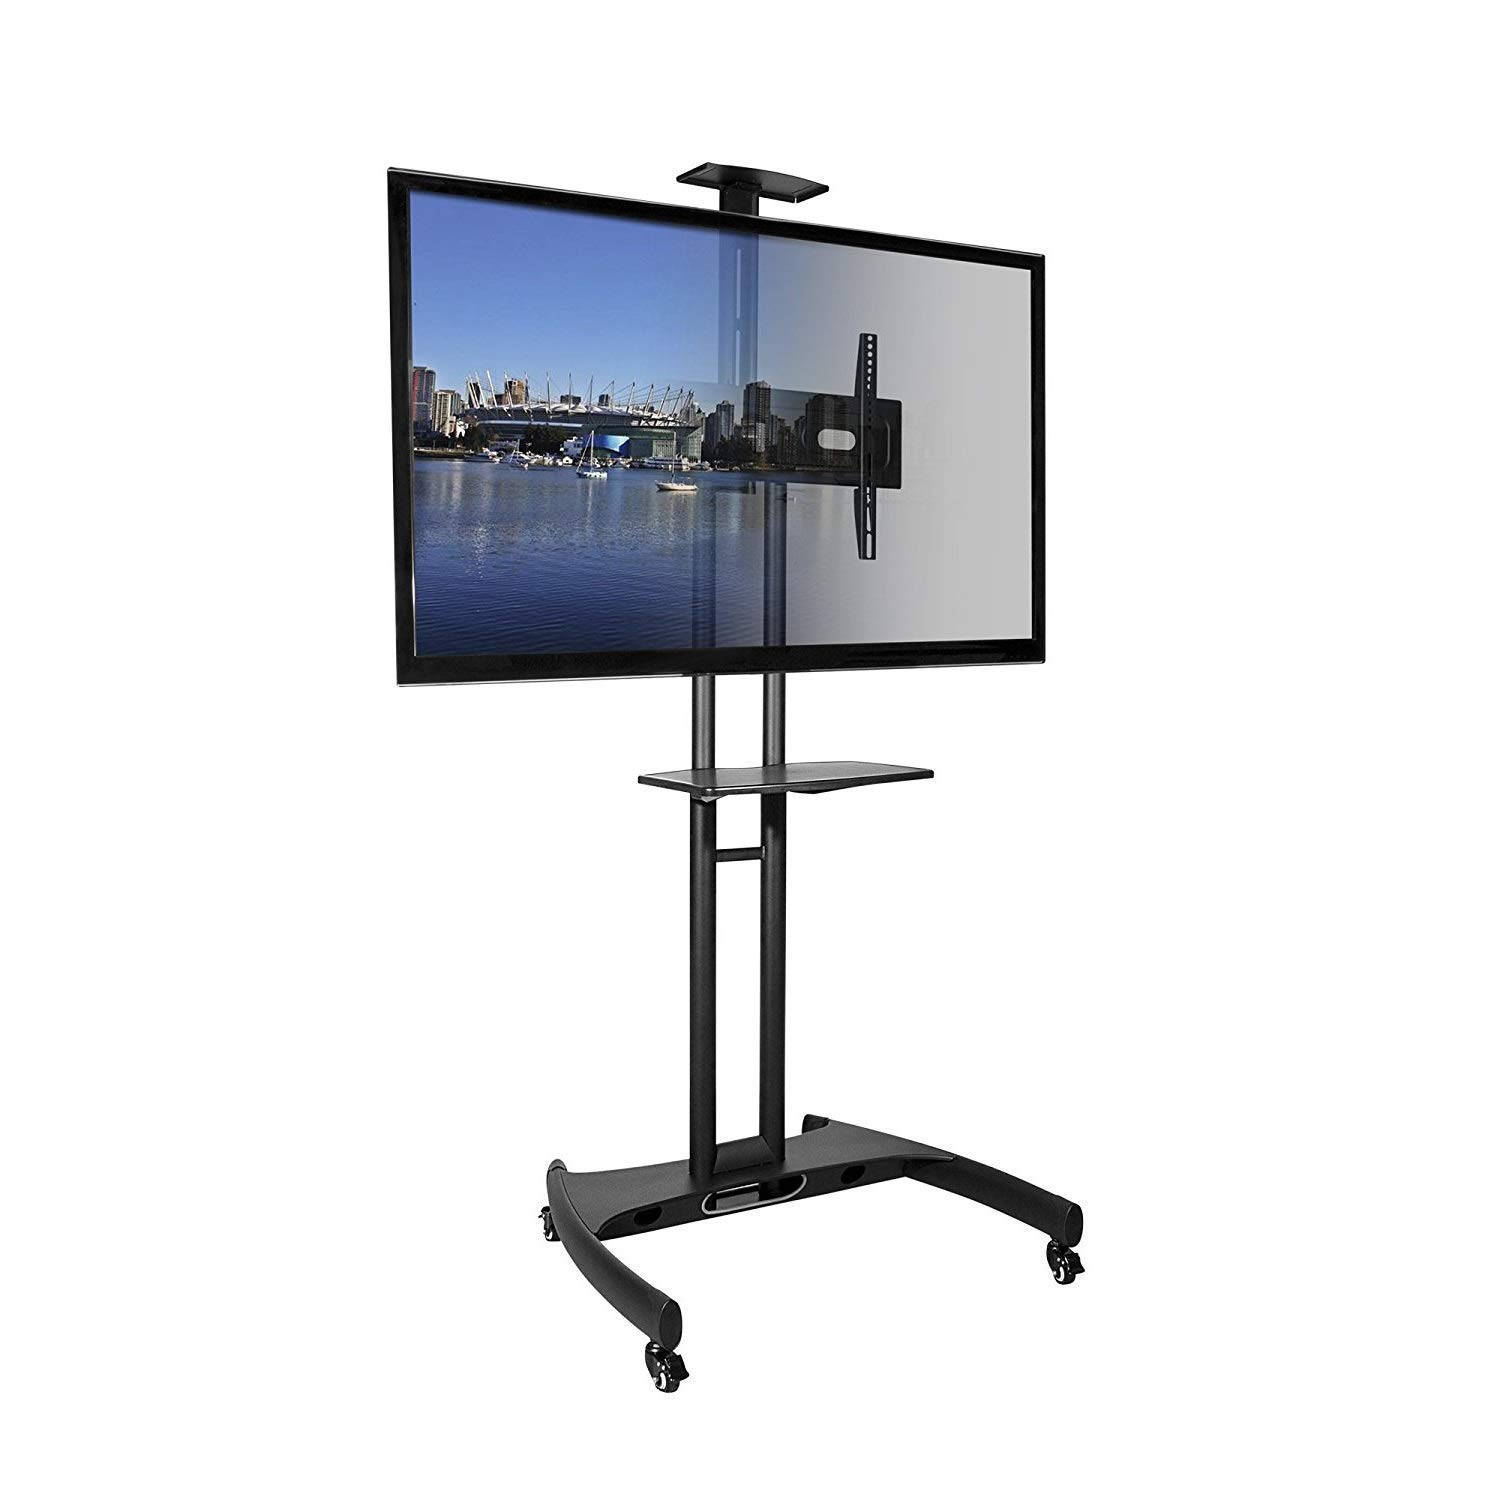 Cheap Portable Flat Screen Tv Stand Find Portable Flat Screen Tv